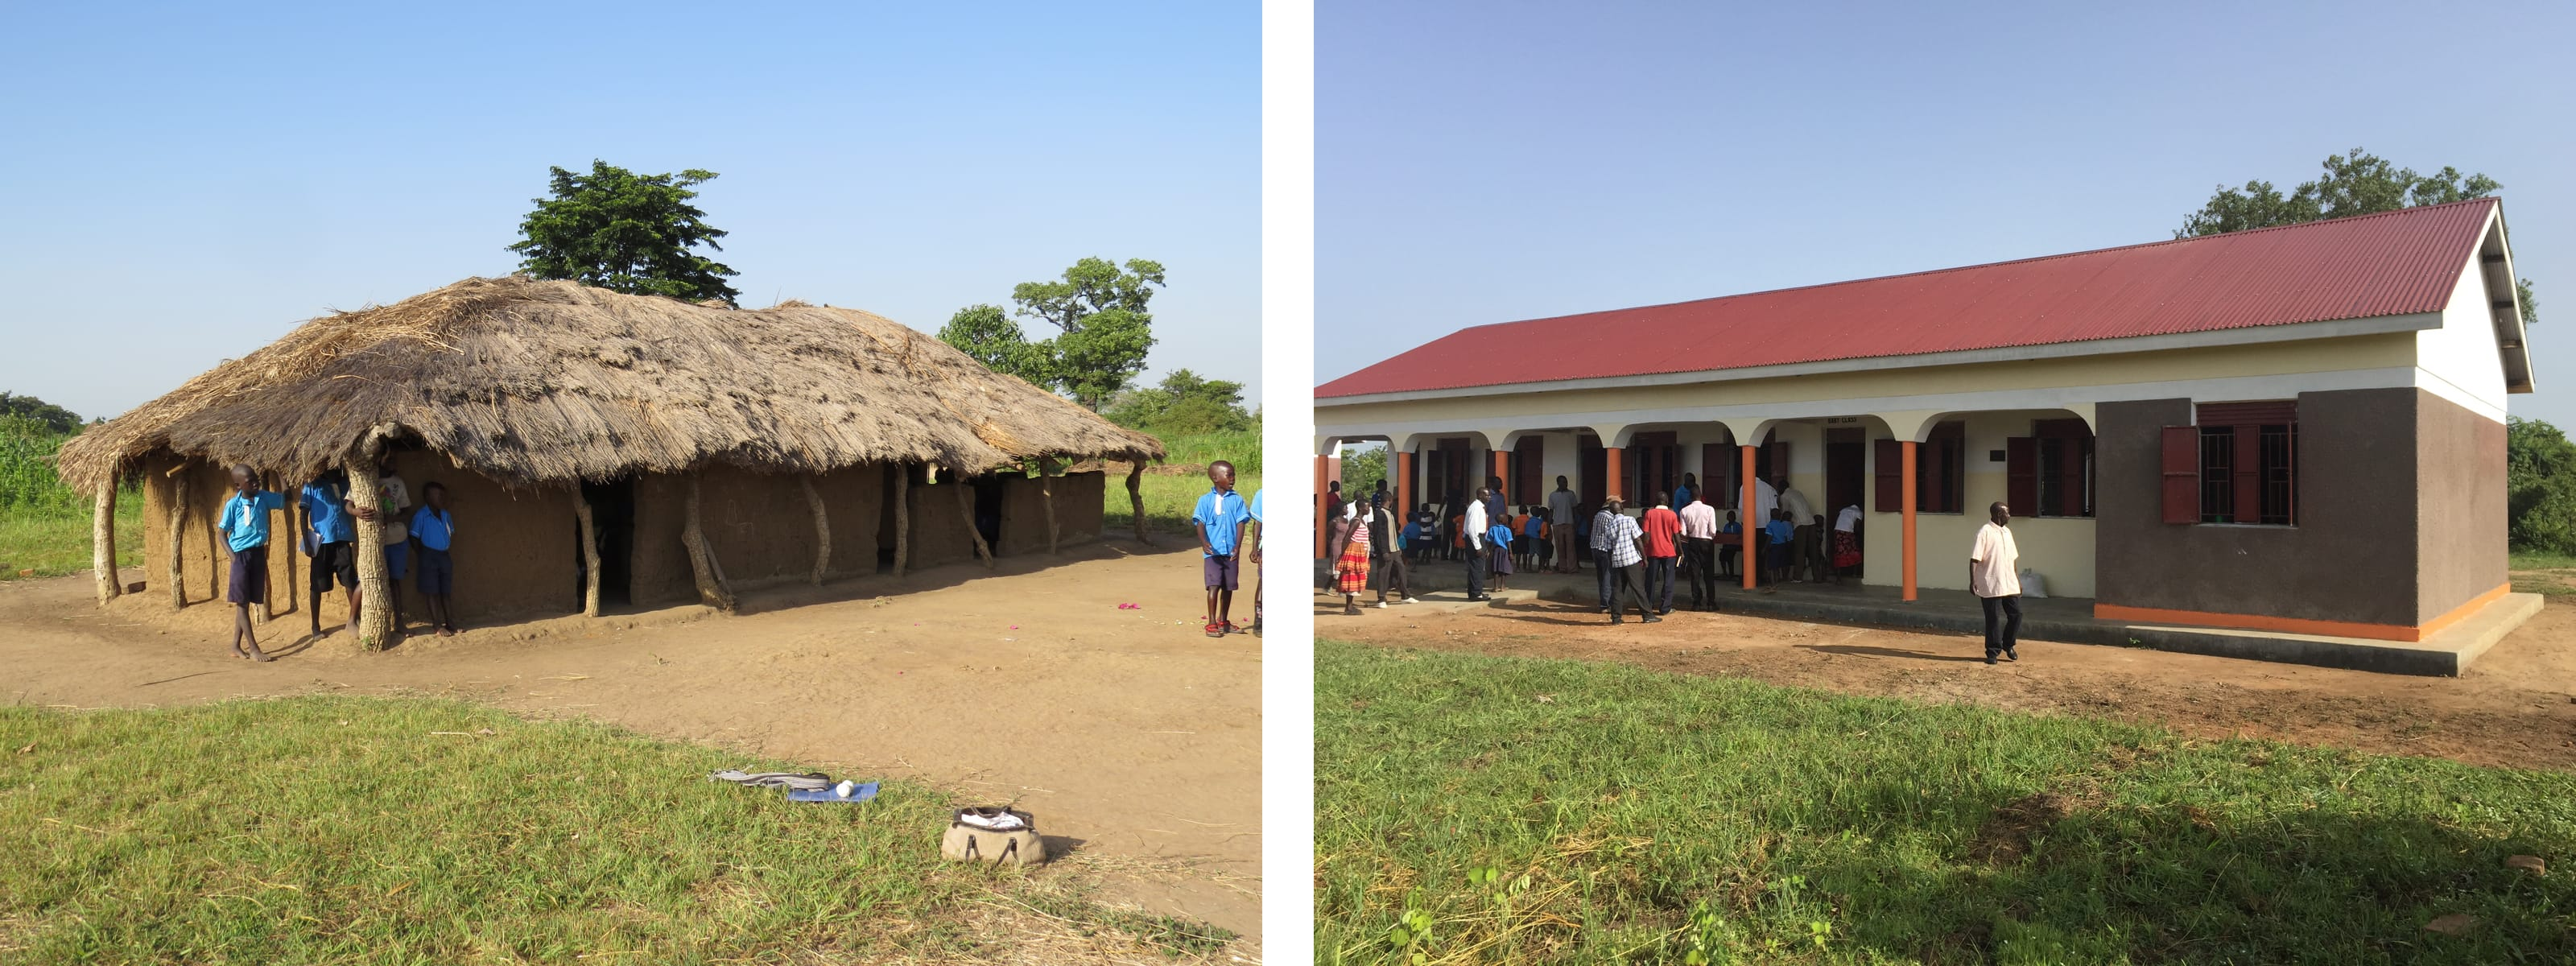 Before and after at Okweta Primary School, Uganda